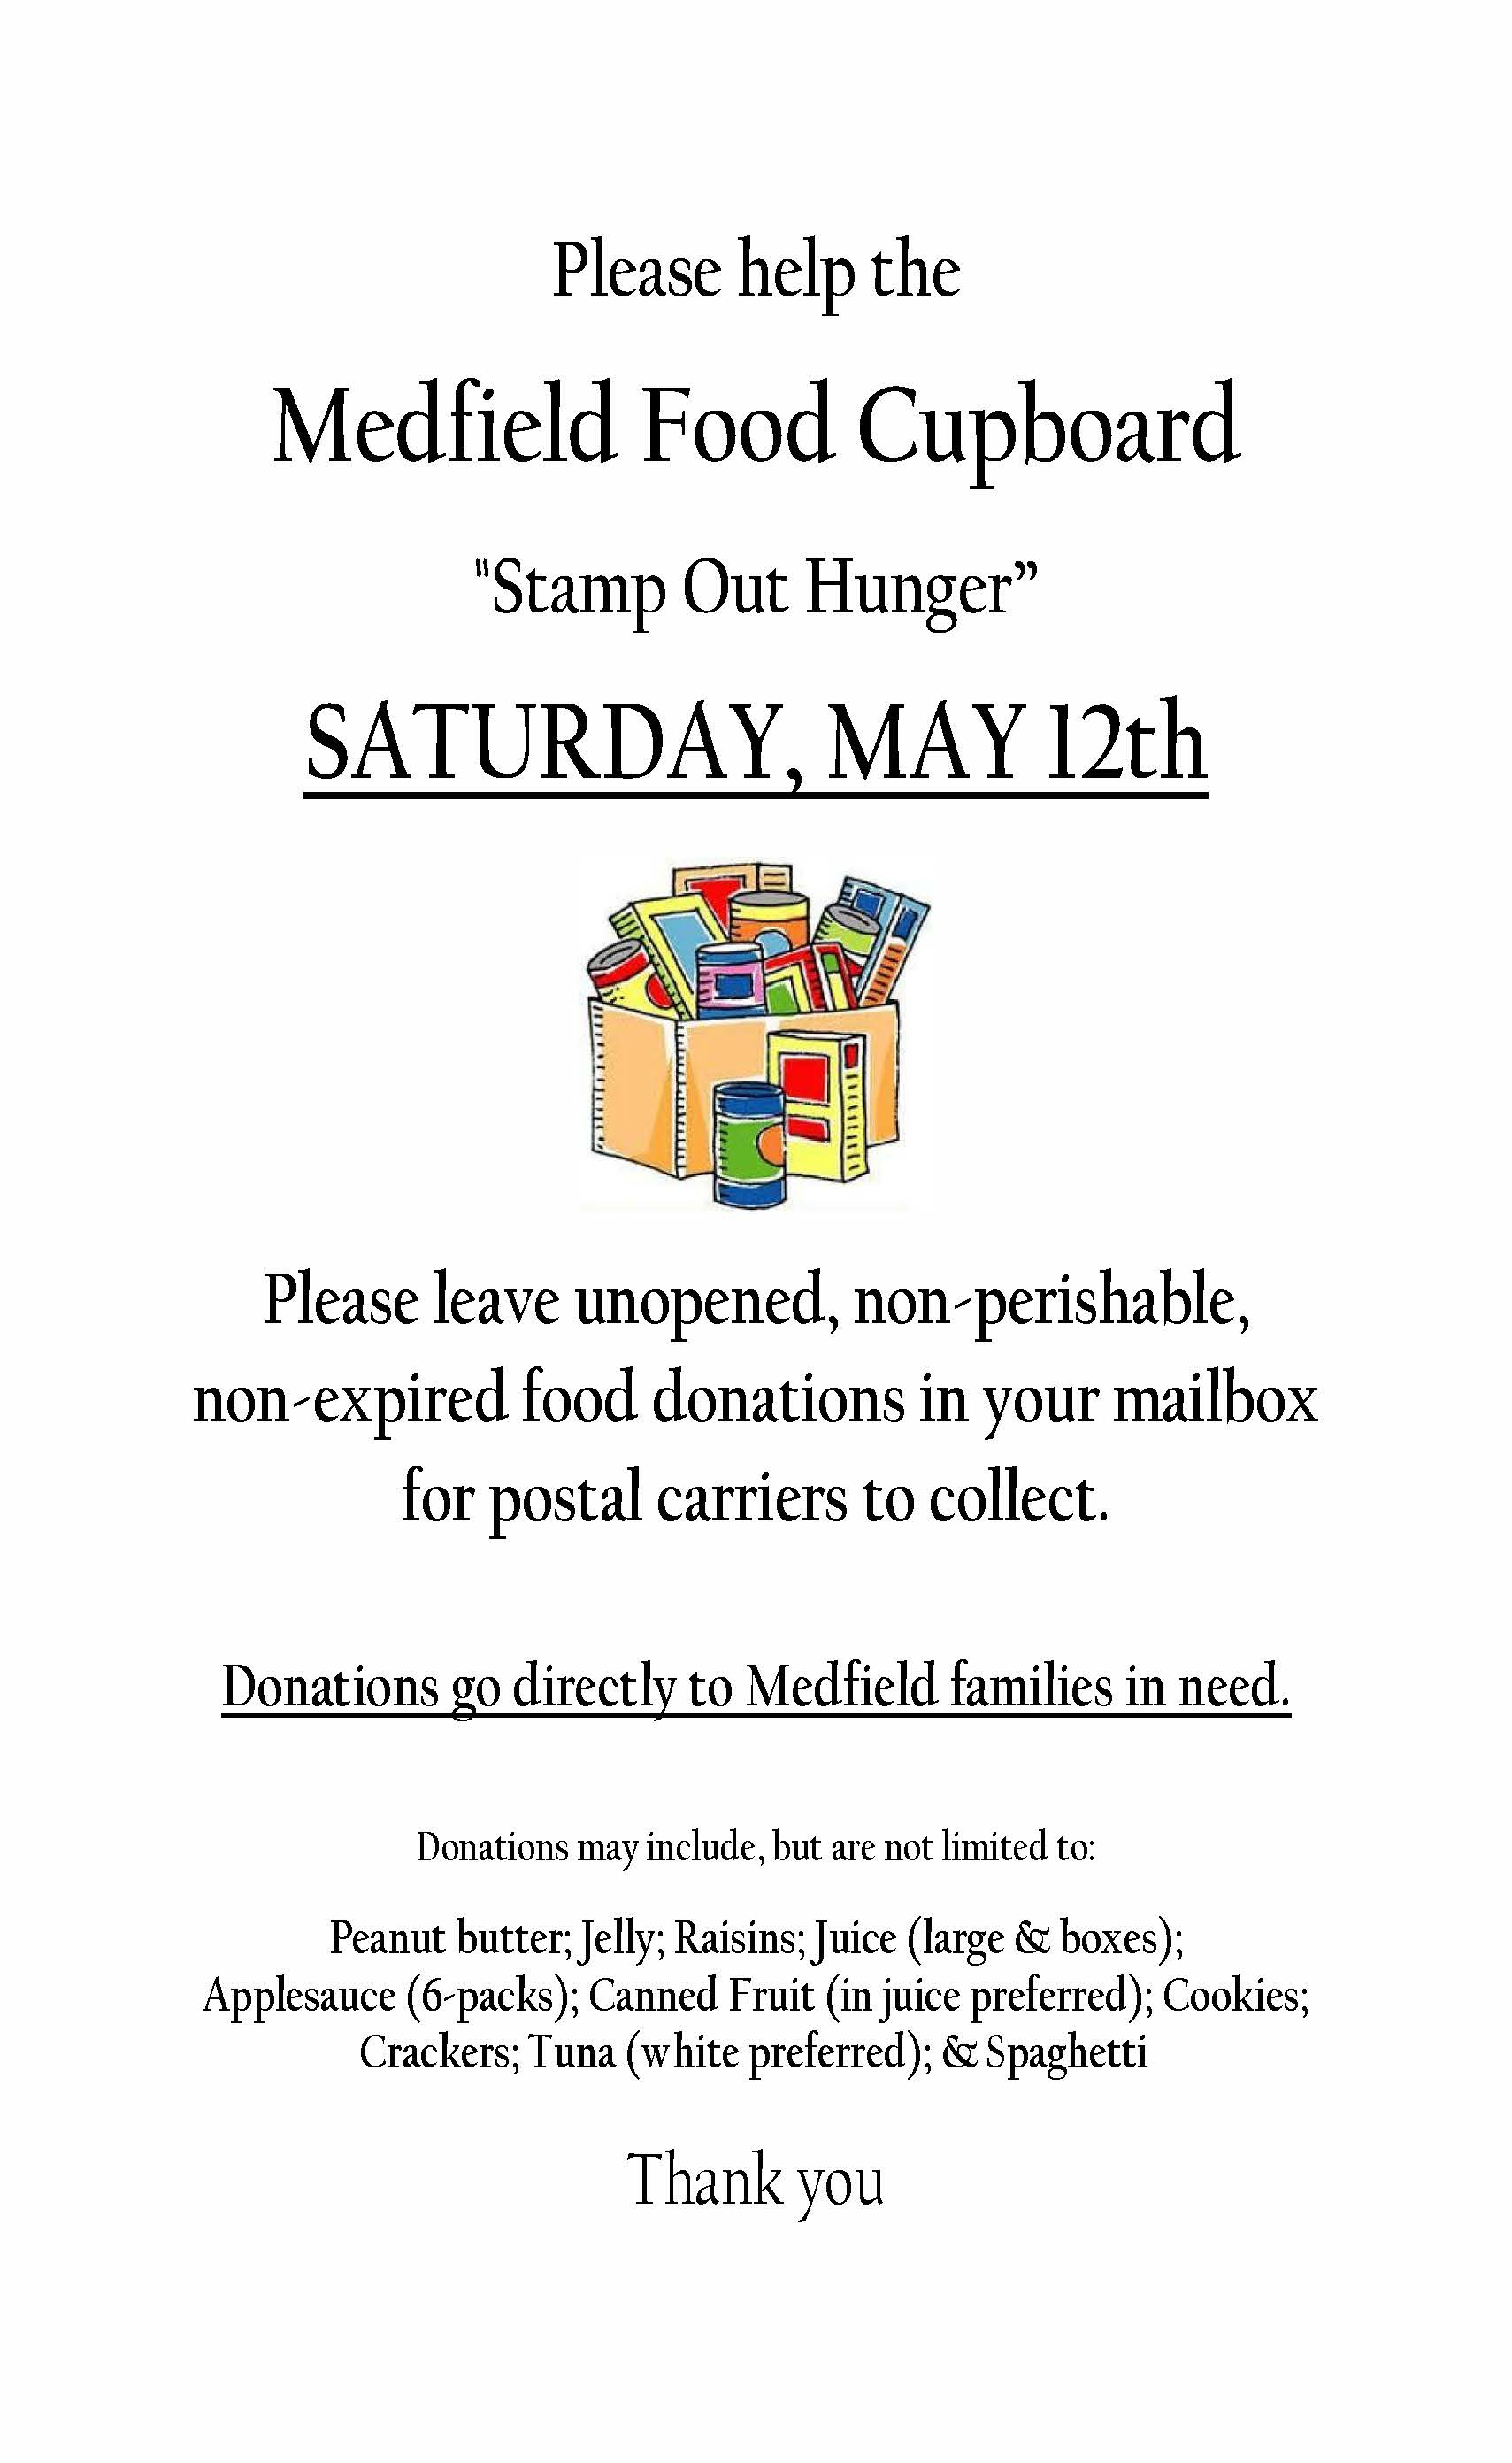 """Jacqui Doe Please help the Medfield Food Cupboard """"Stamp Out Hunger"""" SATURDAY, MAY 12th Please leave unopened, non-perishable, non-expired food donations in your mailbox for postal carriers to collect. Donations go directly to Medfield families in need. Donations may include, but are not limited to: Peanut butter; Jelly; Raisins; Juice (large & boxes); Applesauce (6-packs); Canned Fruit (in juice preferred); Cookies; Crackers; Tuna (white preferred); & Spaghetti Thank you"""